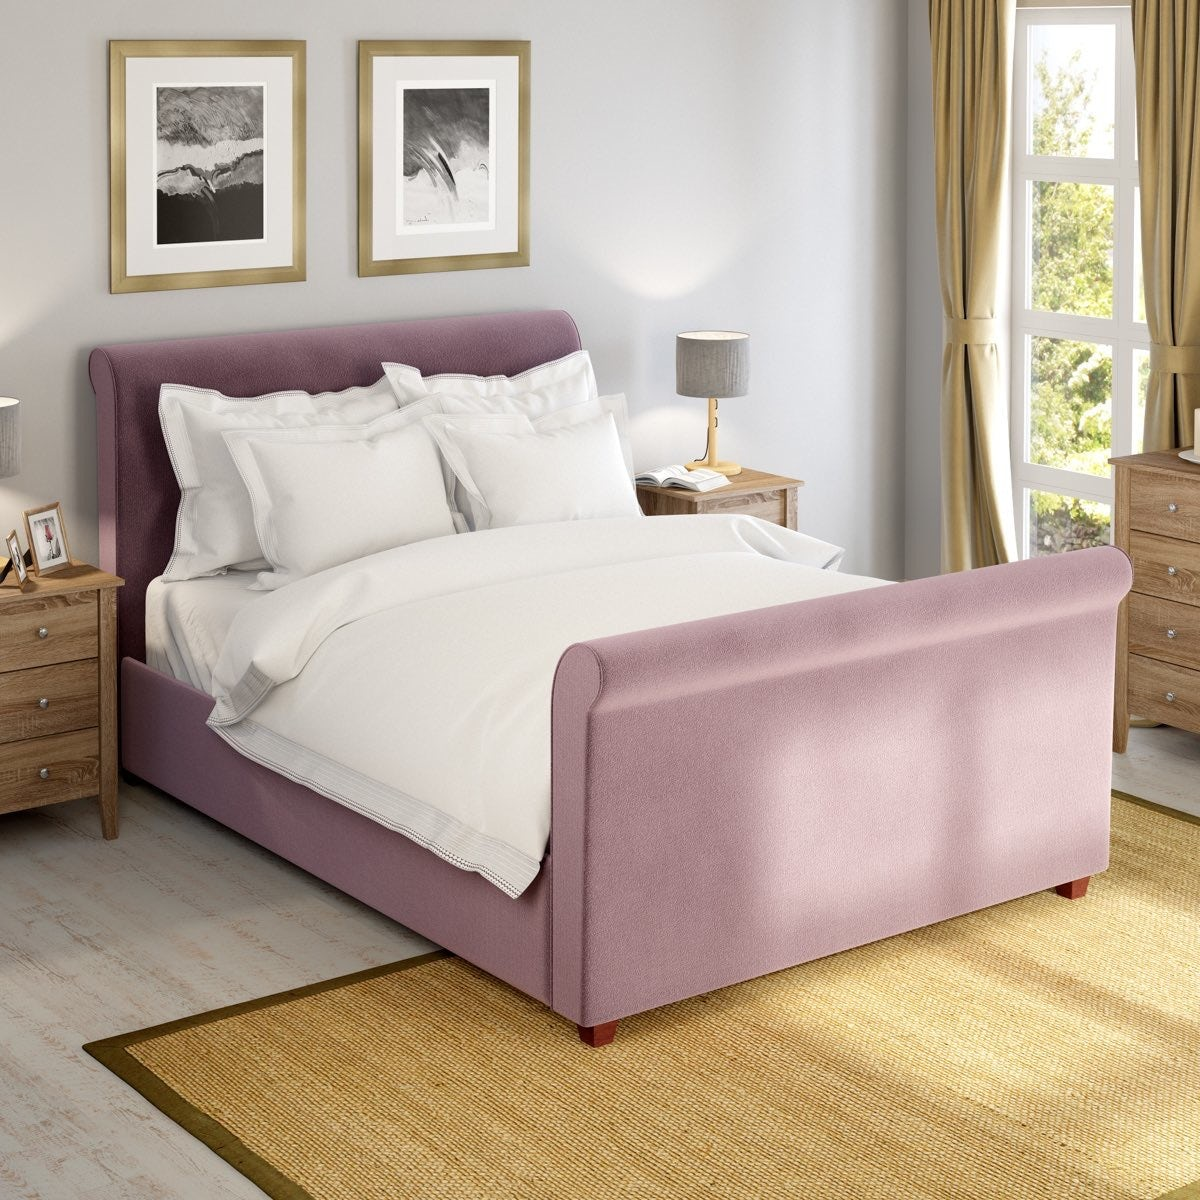 Dreamboat lilac double bed